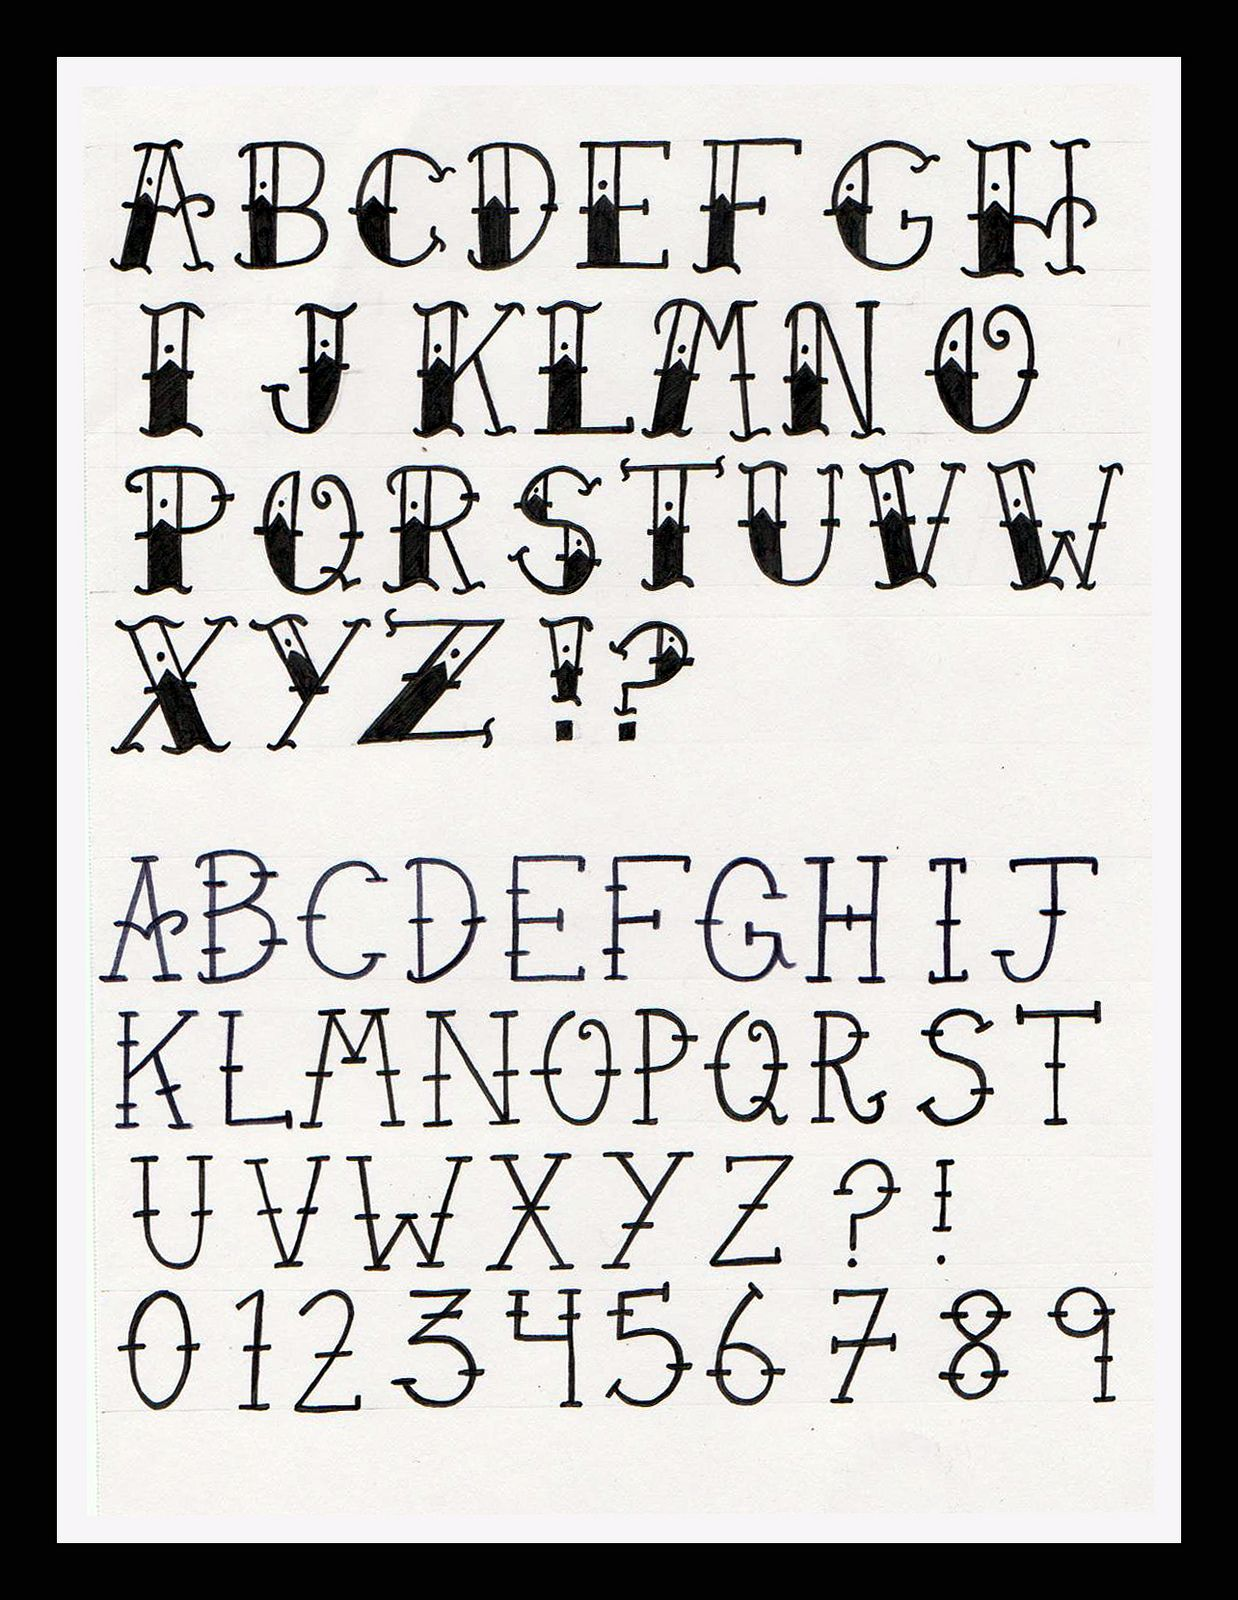 Old School Tattoo Alphabet | Fonts, Google search and Tattoo